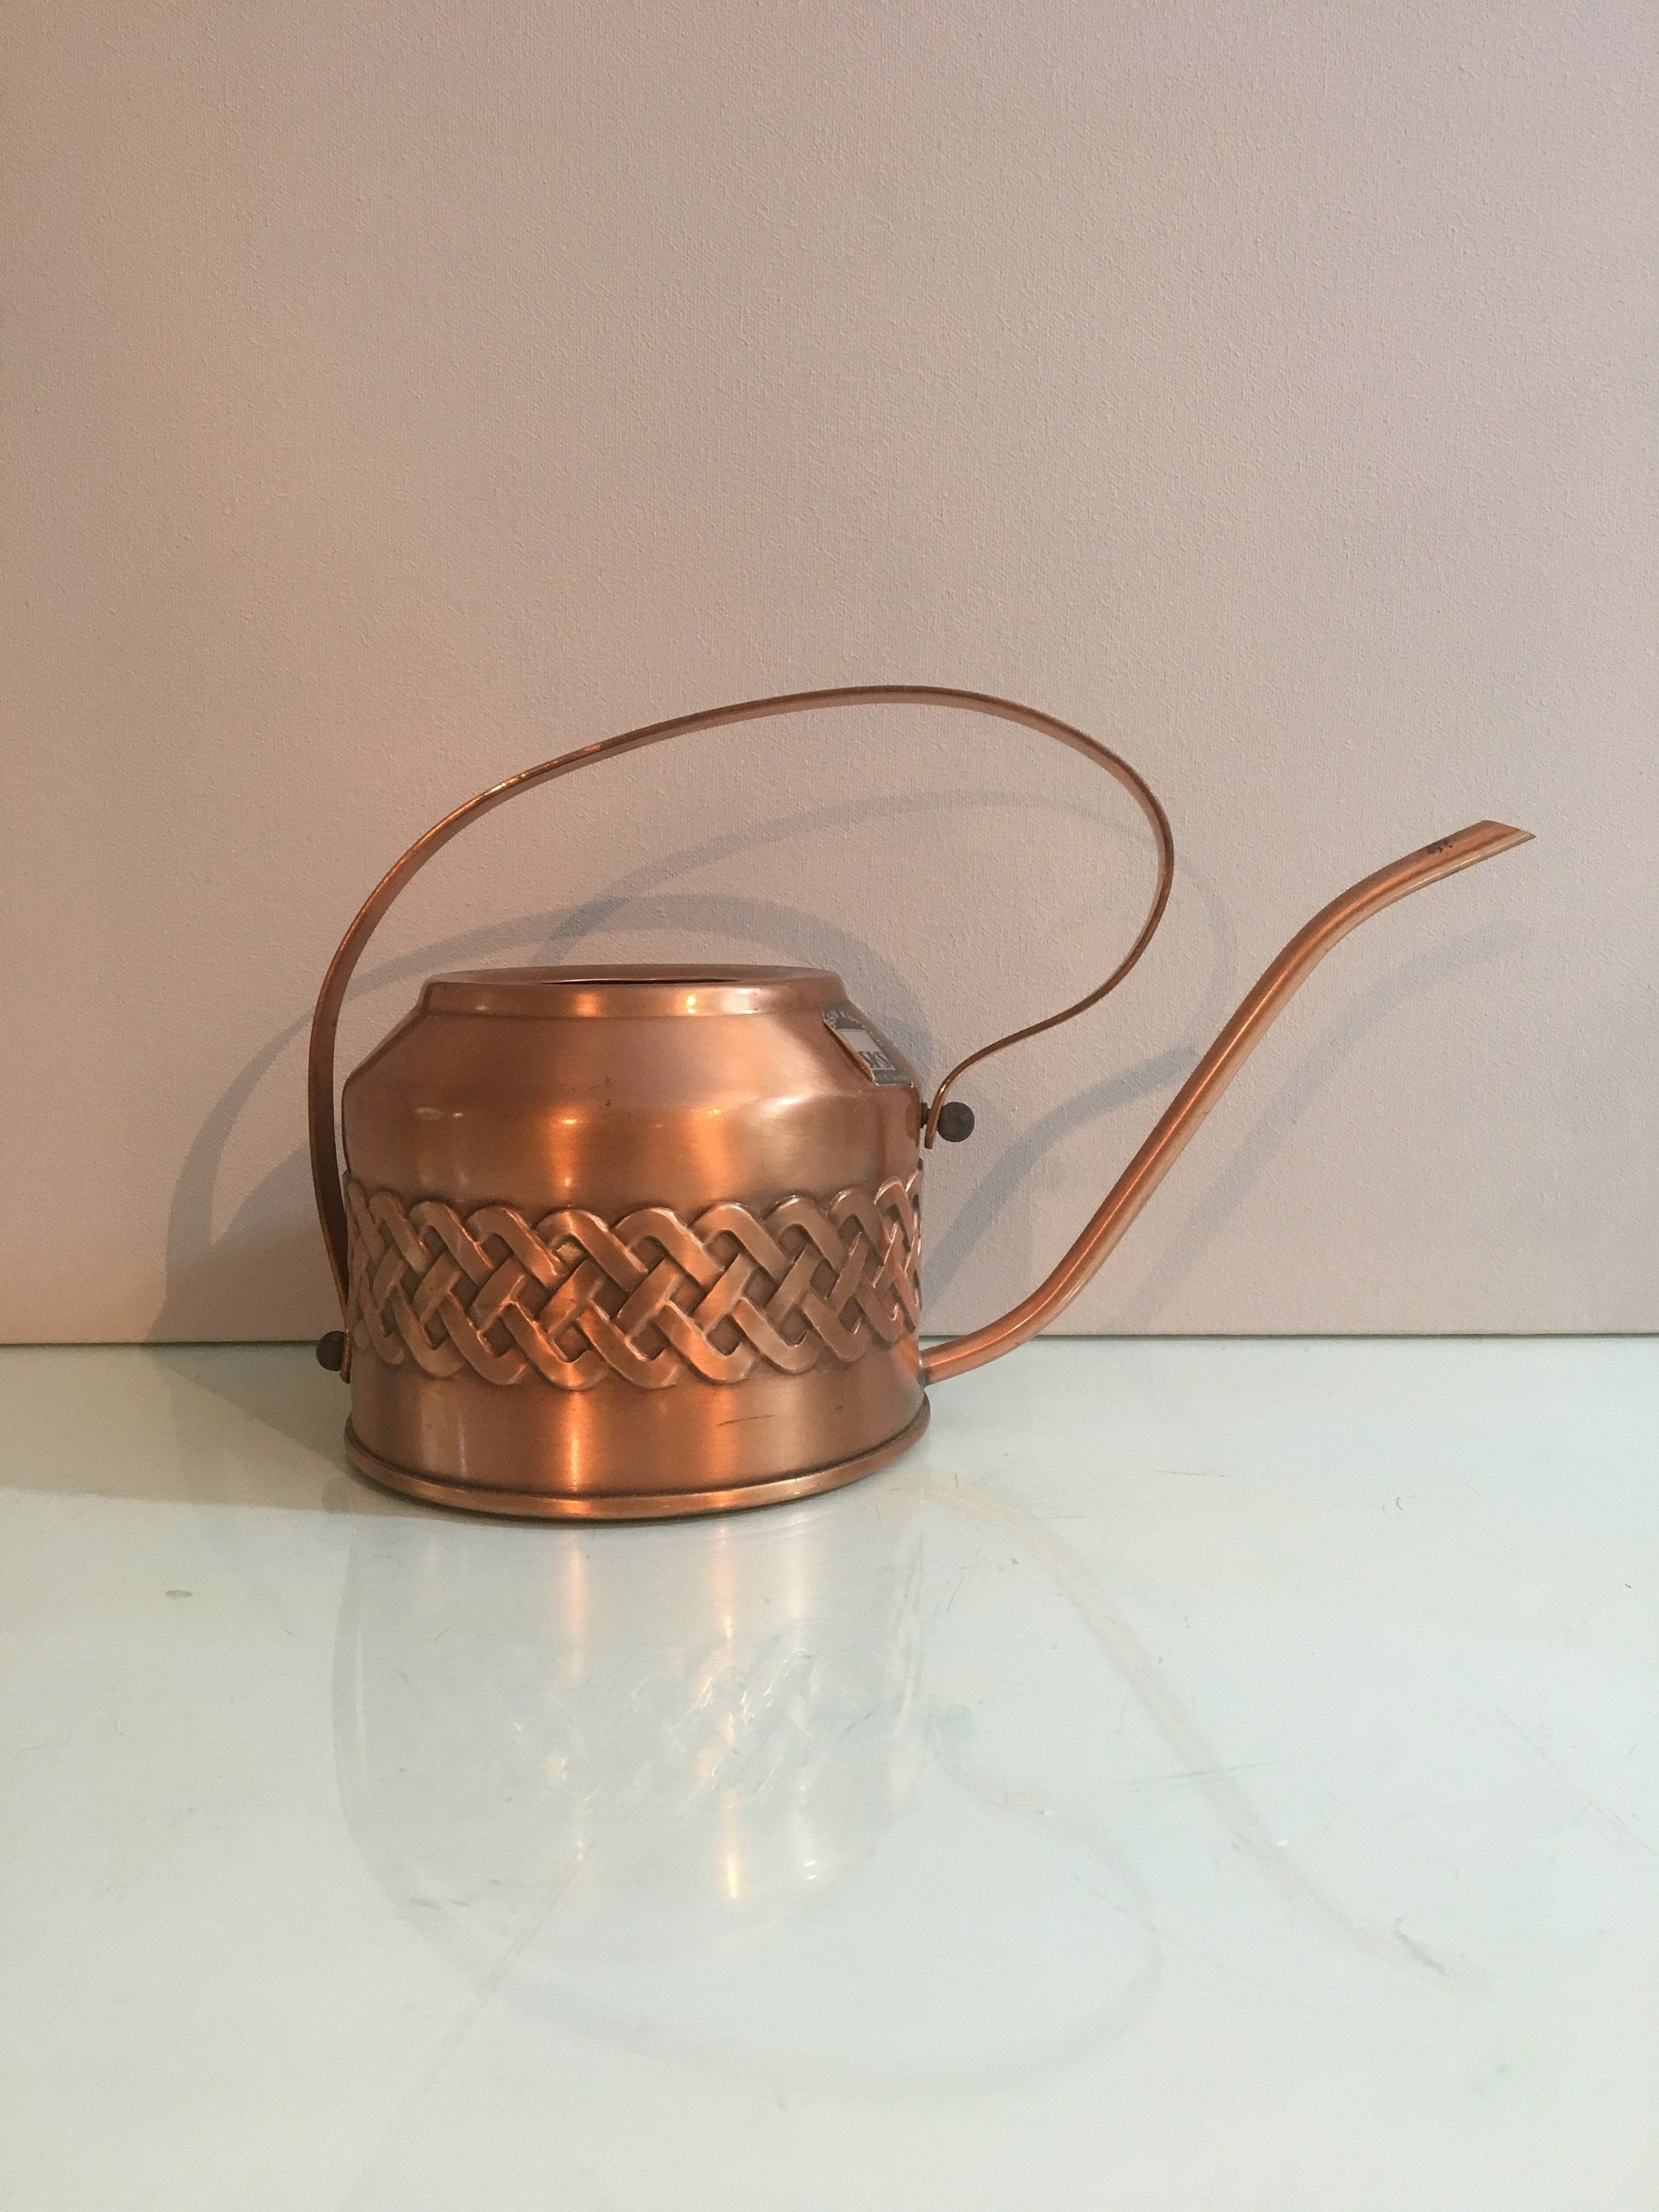 Gießkanne Kupfer Vintage Copper Watering Can Boho Chic Cable Stitch Pattern